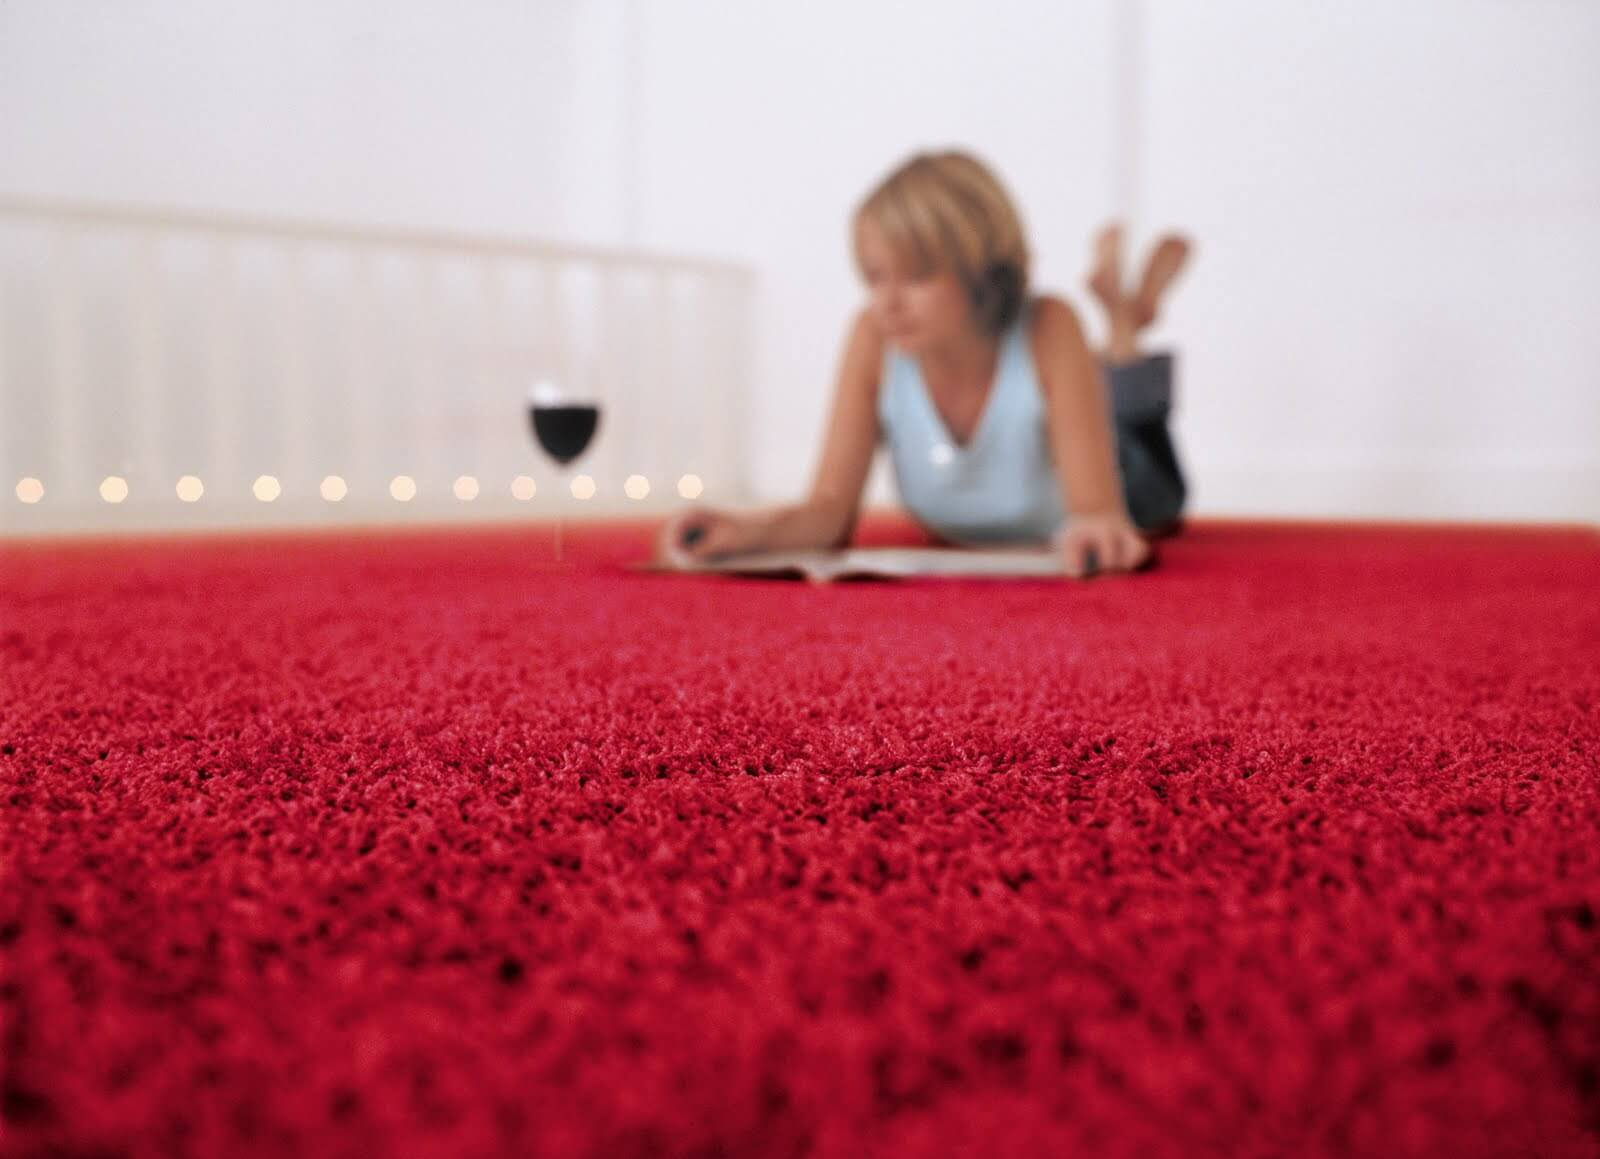 new-carpet-red carpet and red wine